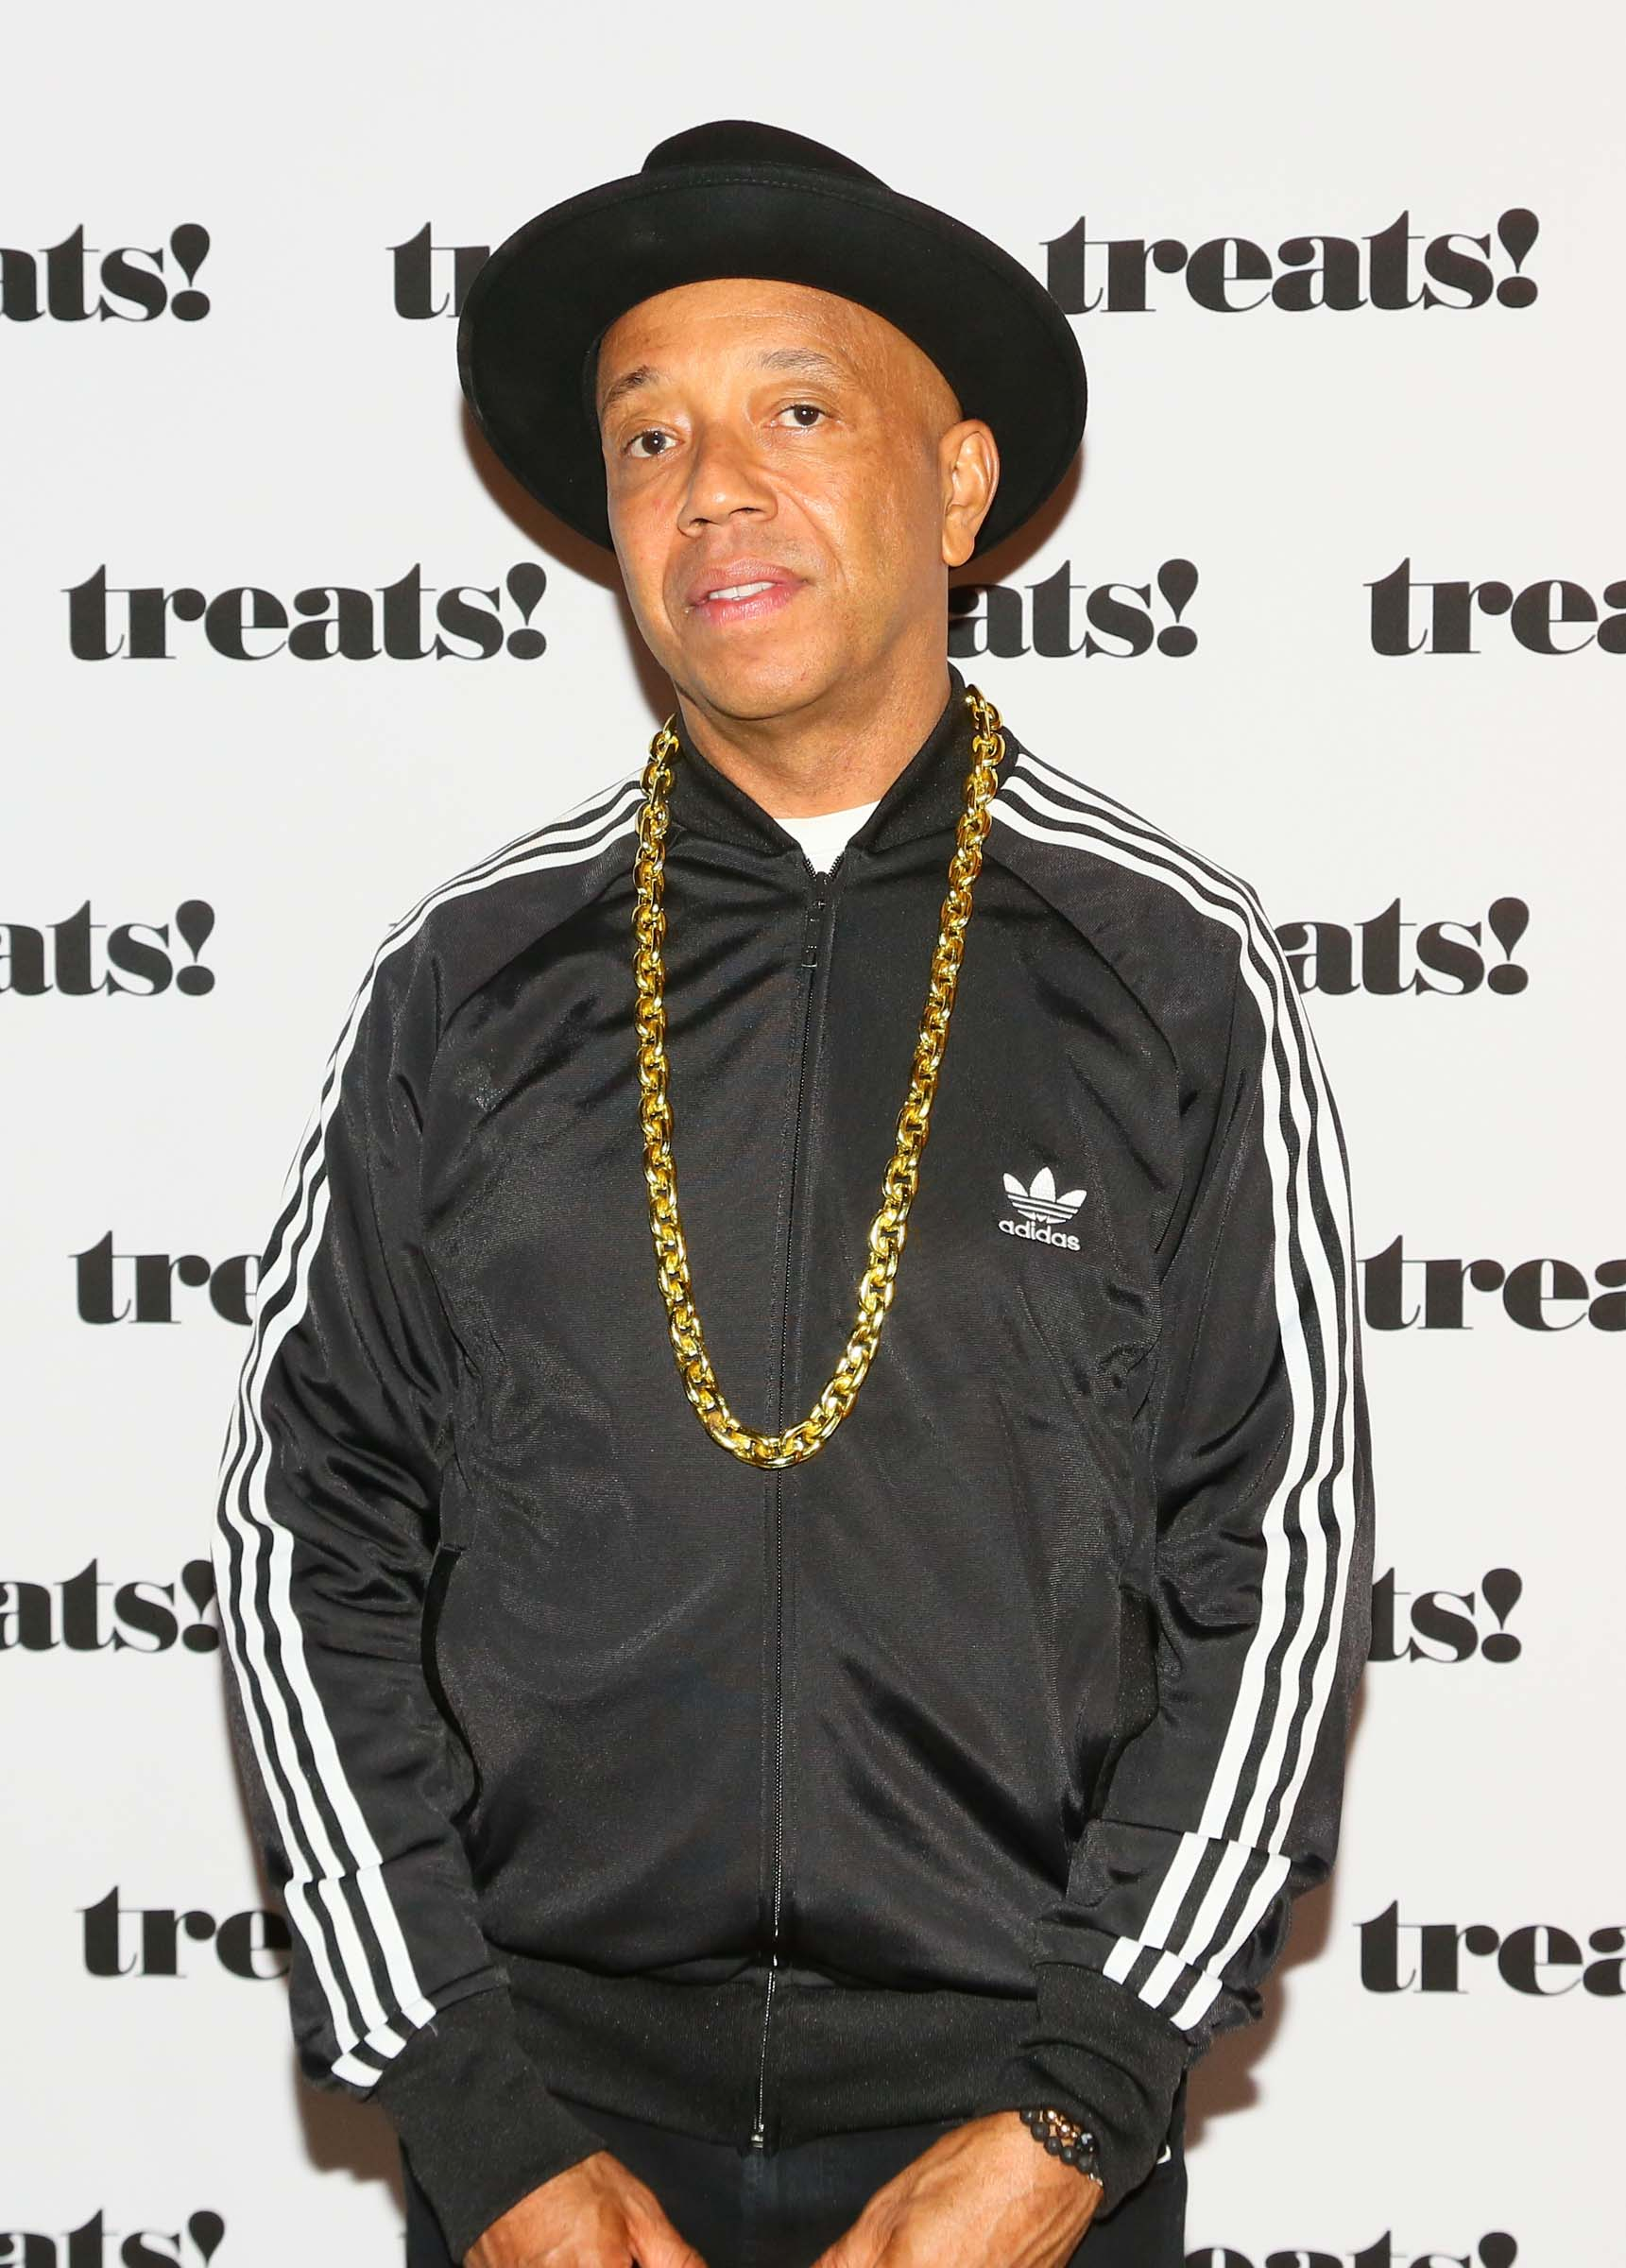 LOS ANGELES, CA - OCTOBER 29: Entrepreneur Russell Simmons attends Trick or treats! - The 6th Annual treats! Magazine Halloween Party Sponsored by Absolut Elyx on October 29, 2016 in Los Angeles, California.  (Photo by Gabriel Olsen/WireImage)